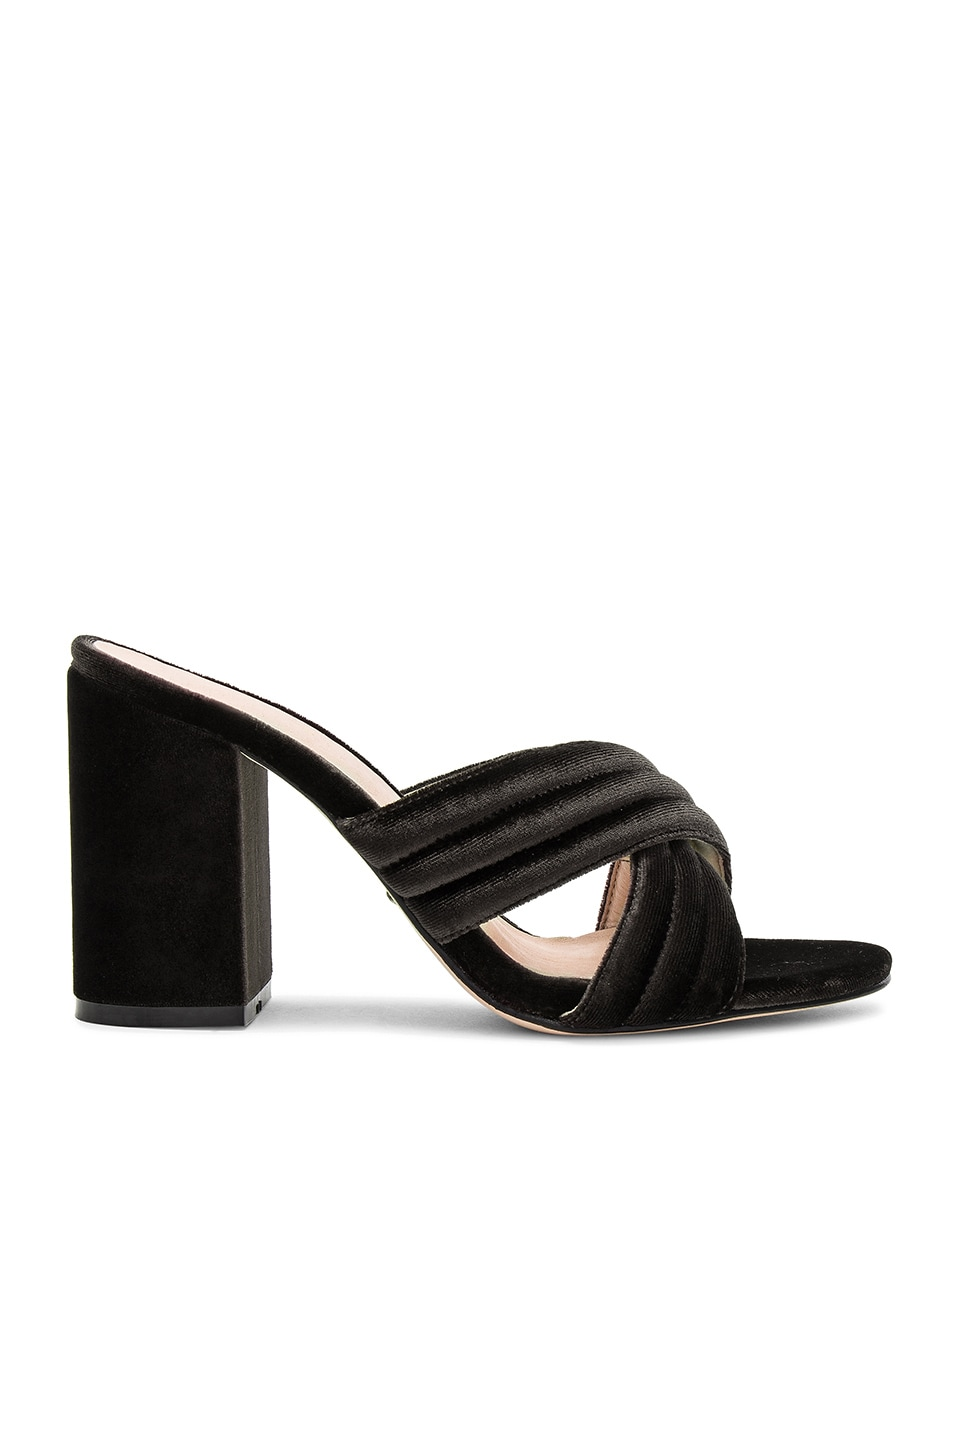 RAYE Bella Mule in Charcoal Velvet